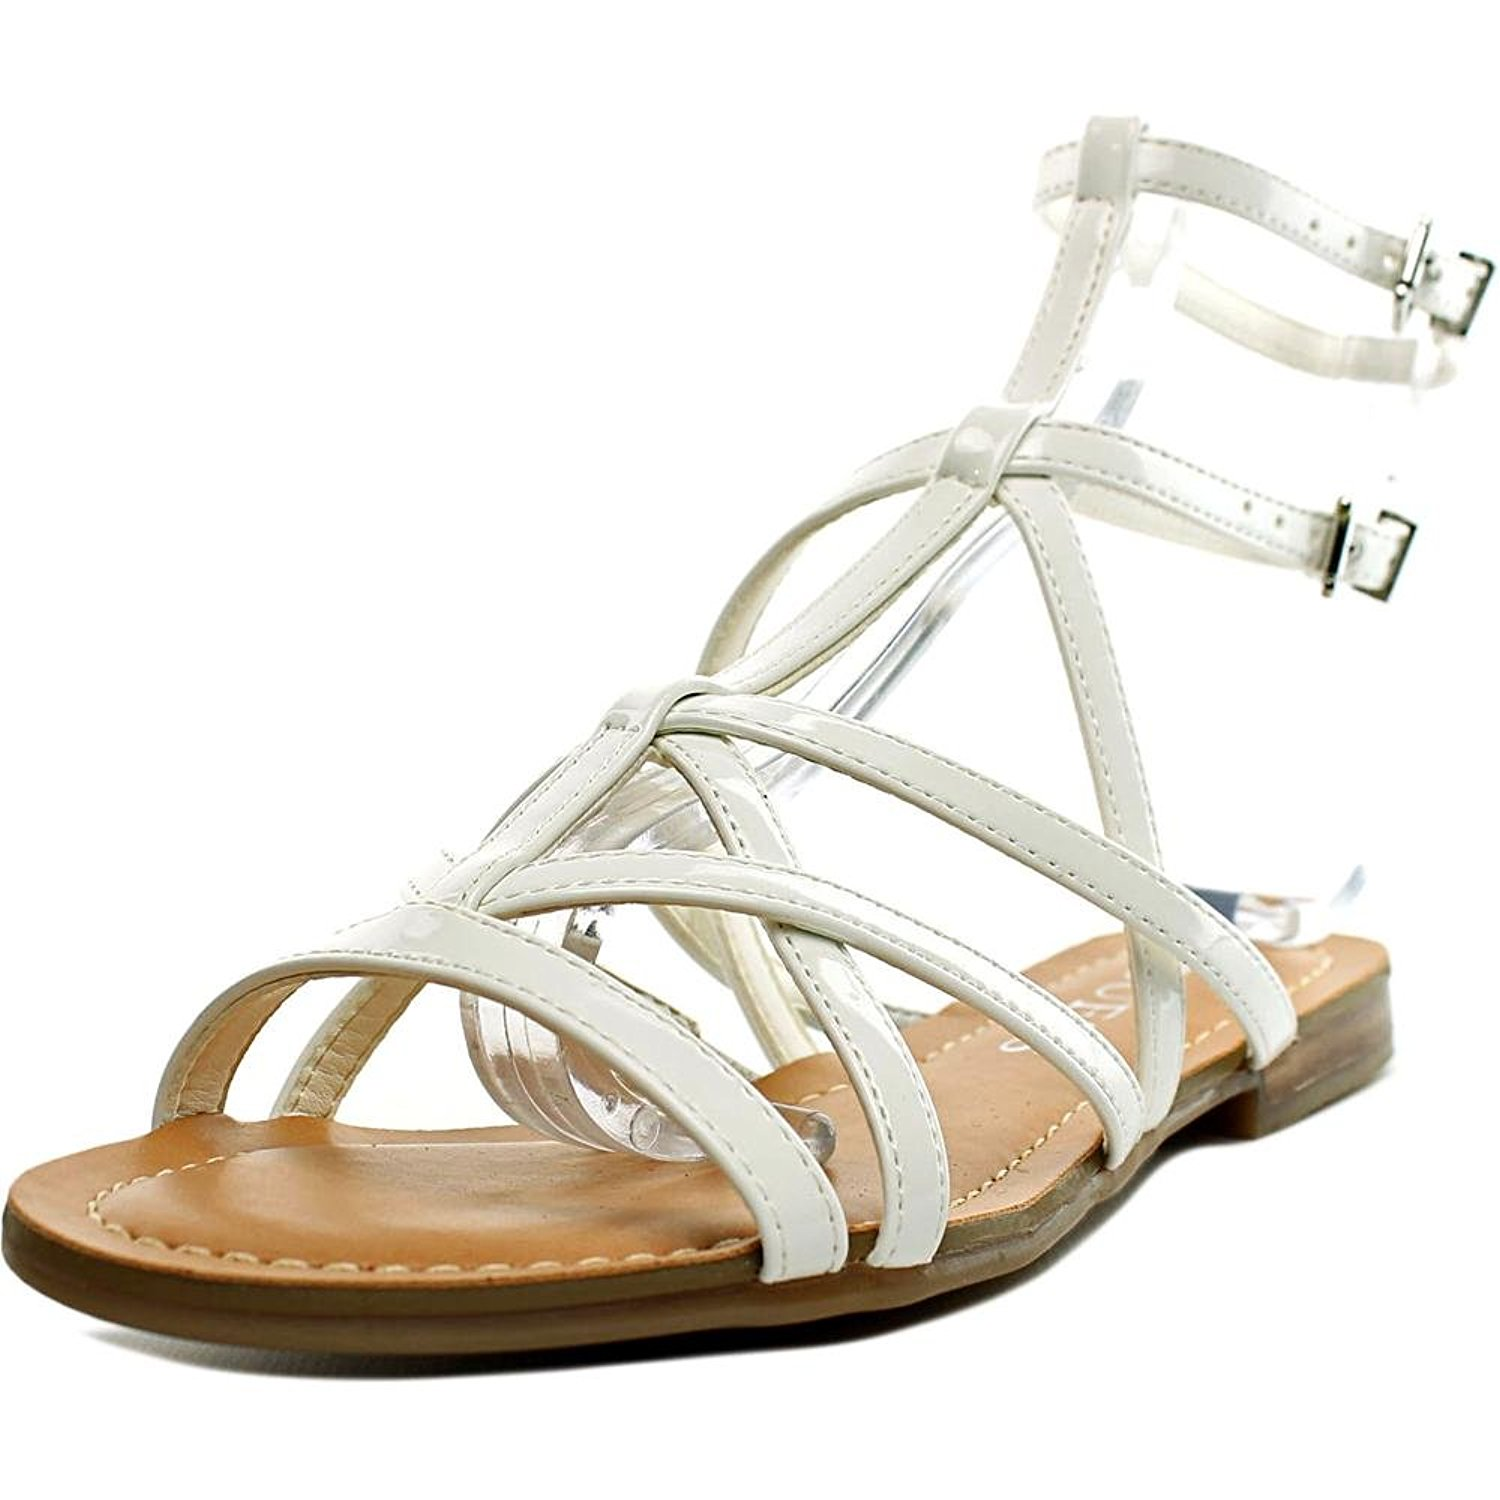 GUESS Womens Mannie Open Toe Casual Gladiator Sandals White Size 5.5